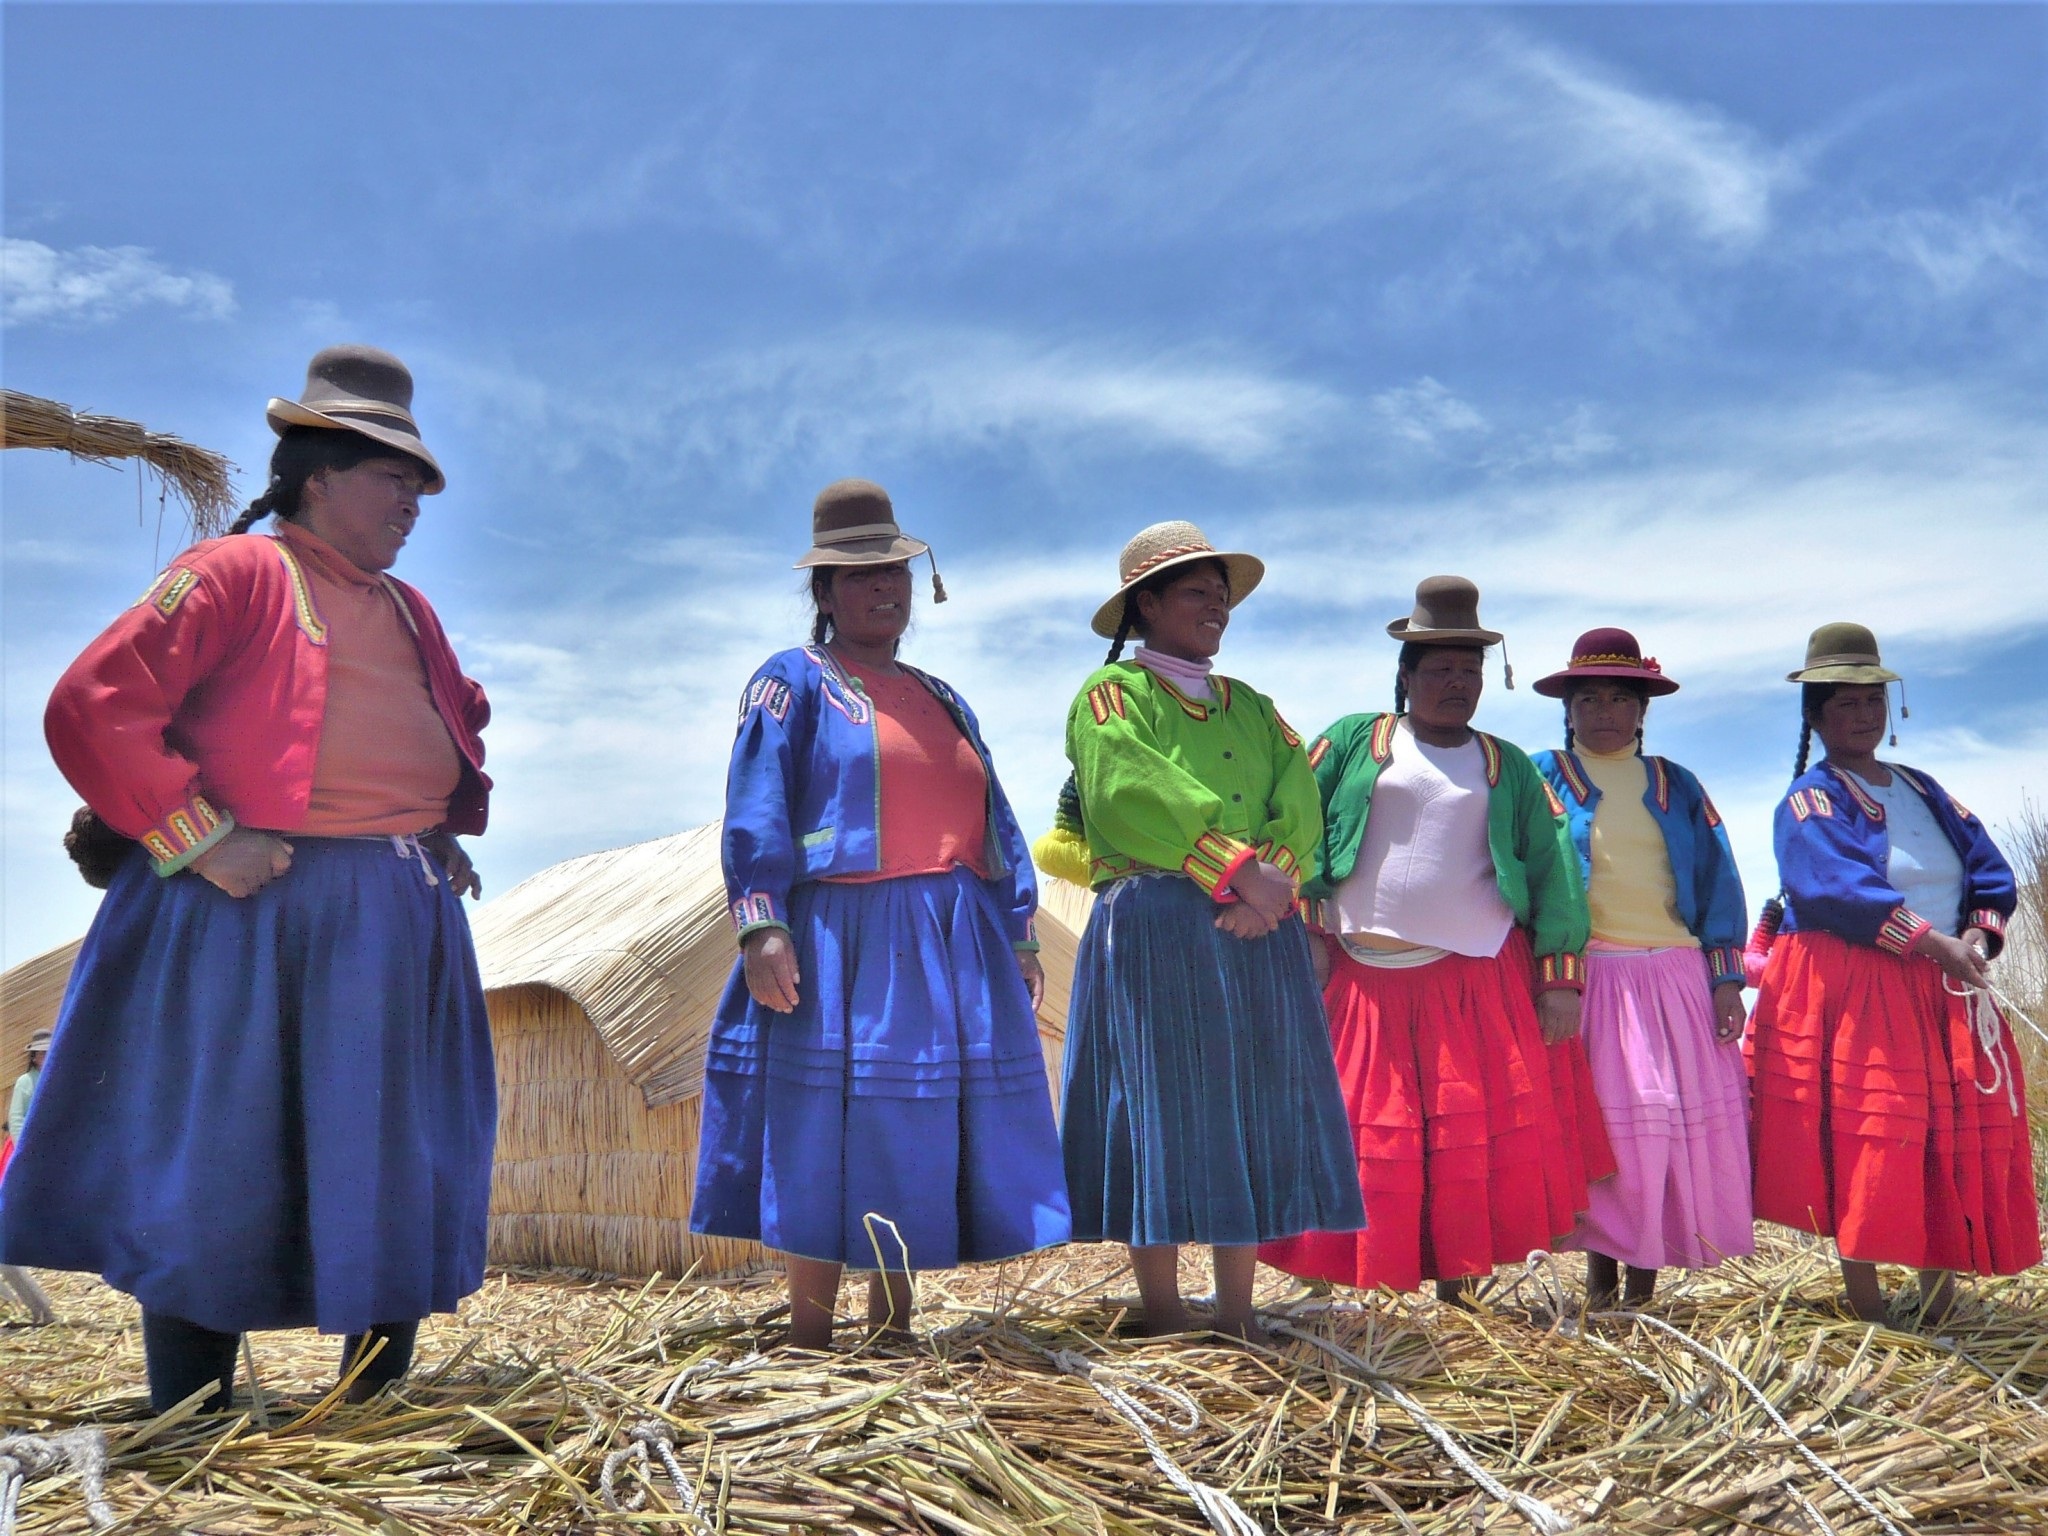 A group of Peruvian women in colourful traditional dress standing on an island of reeds.